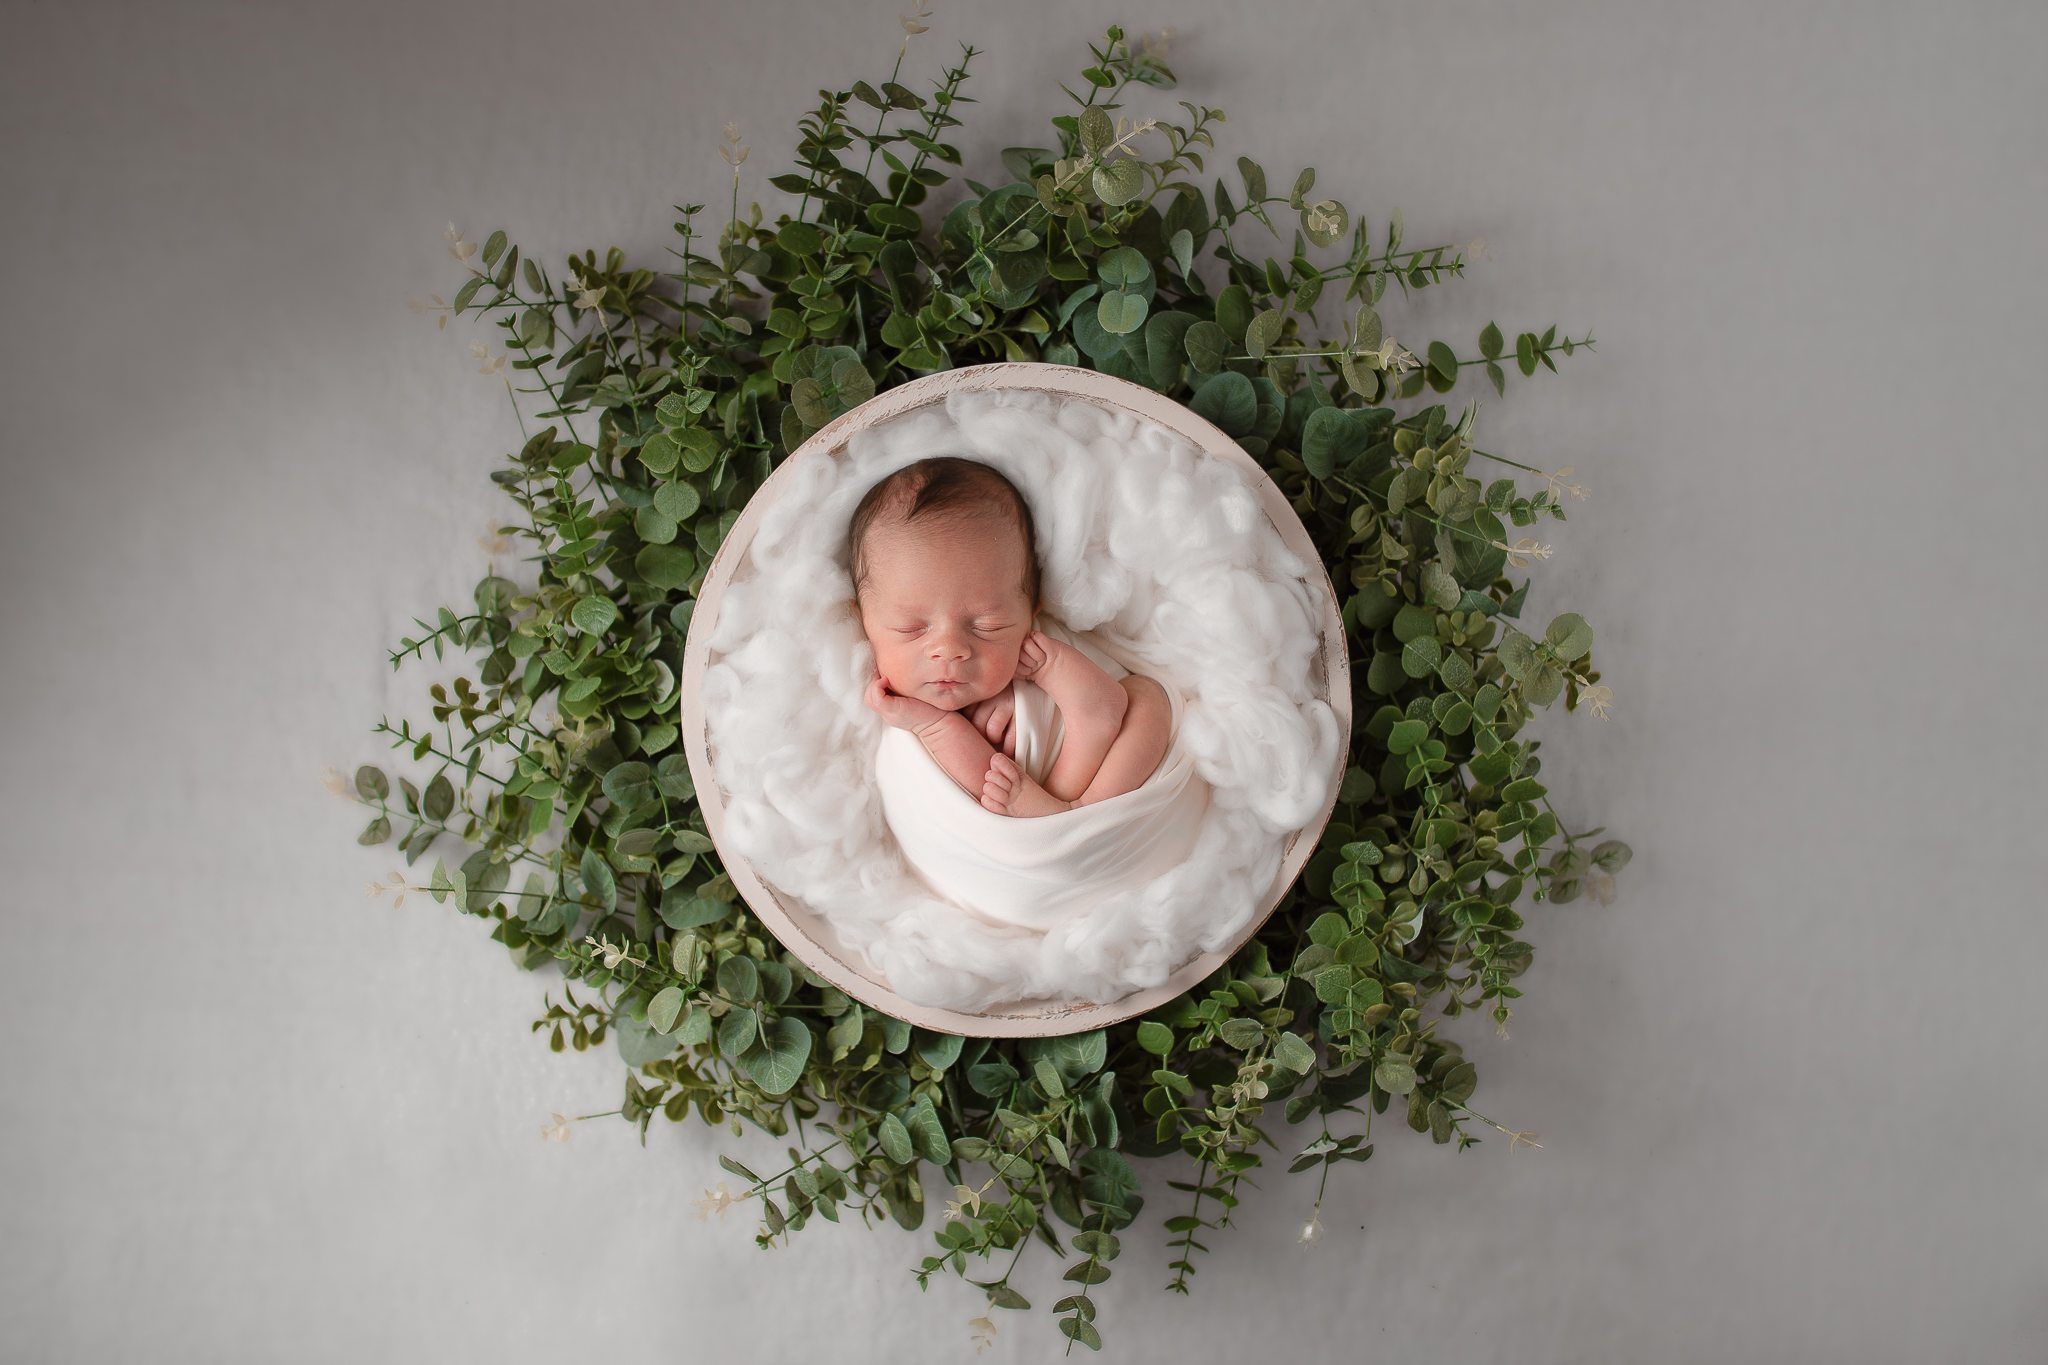 Newborn389NaomiLuciennePhotography032019-Edit.jpg